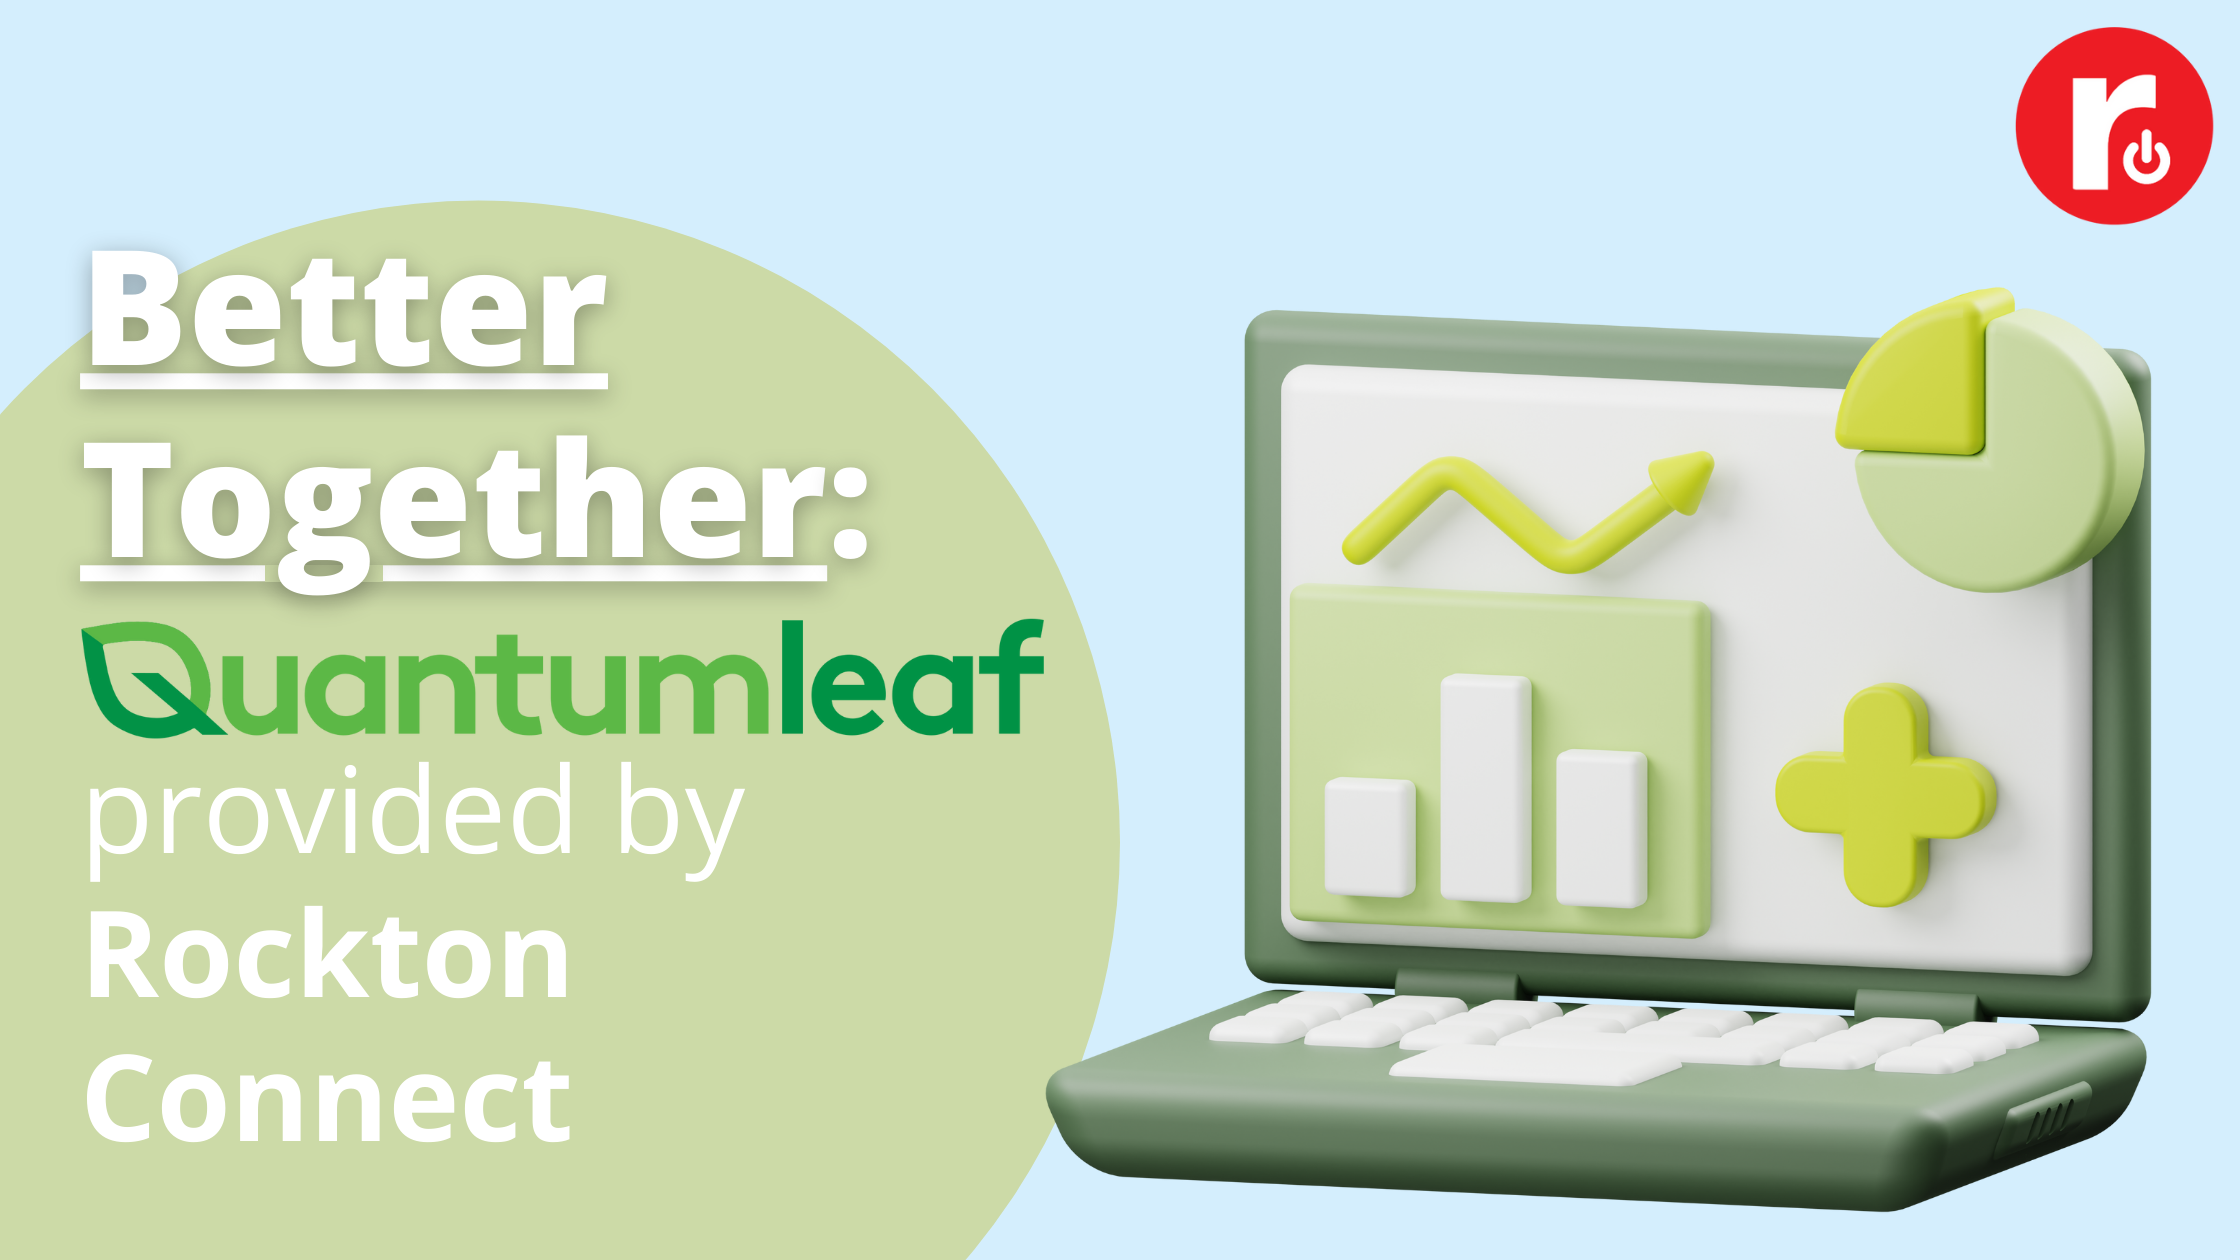 Quantumleaf provided by Rockton Connect